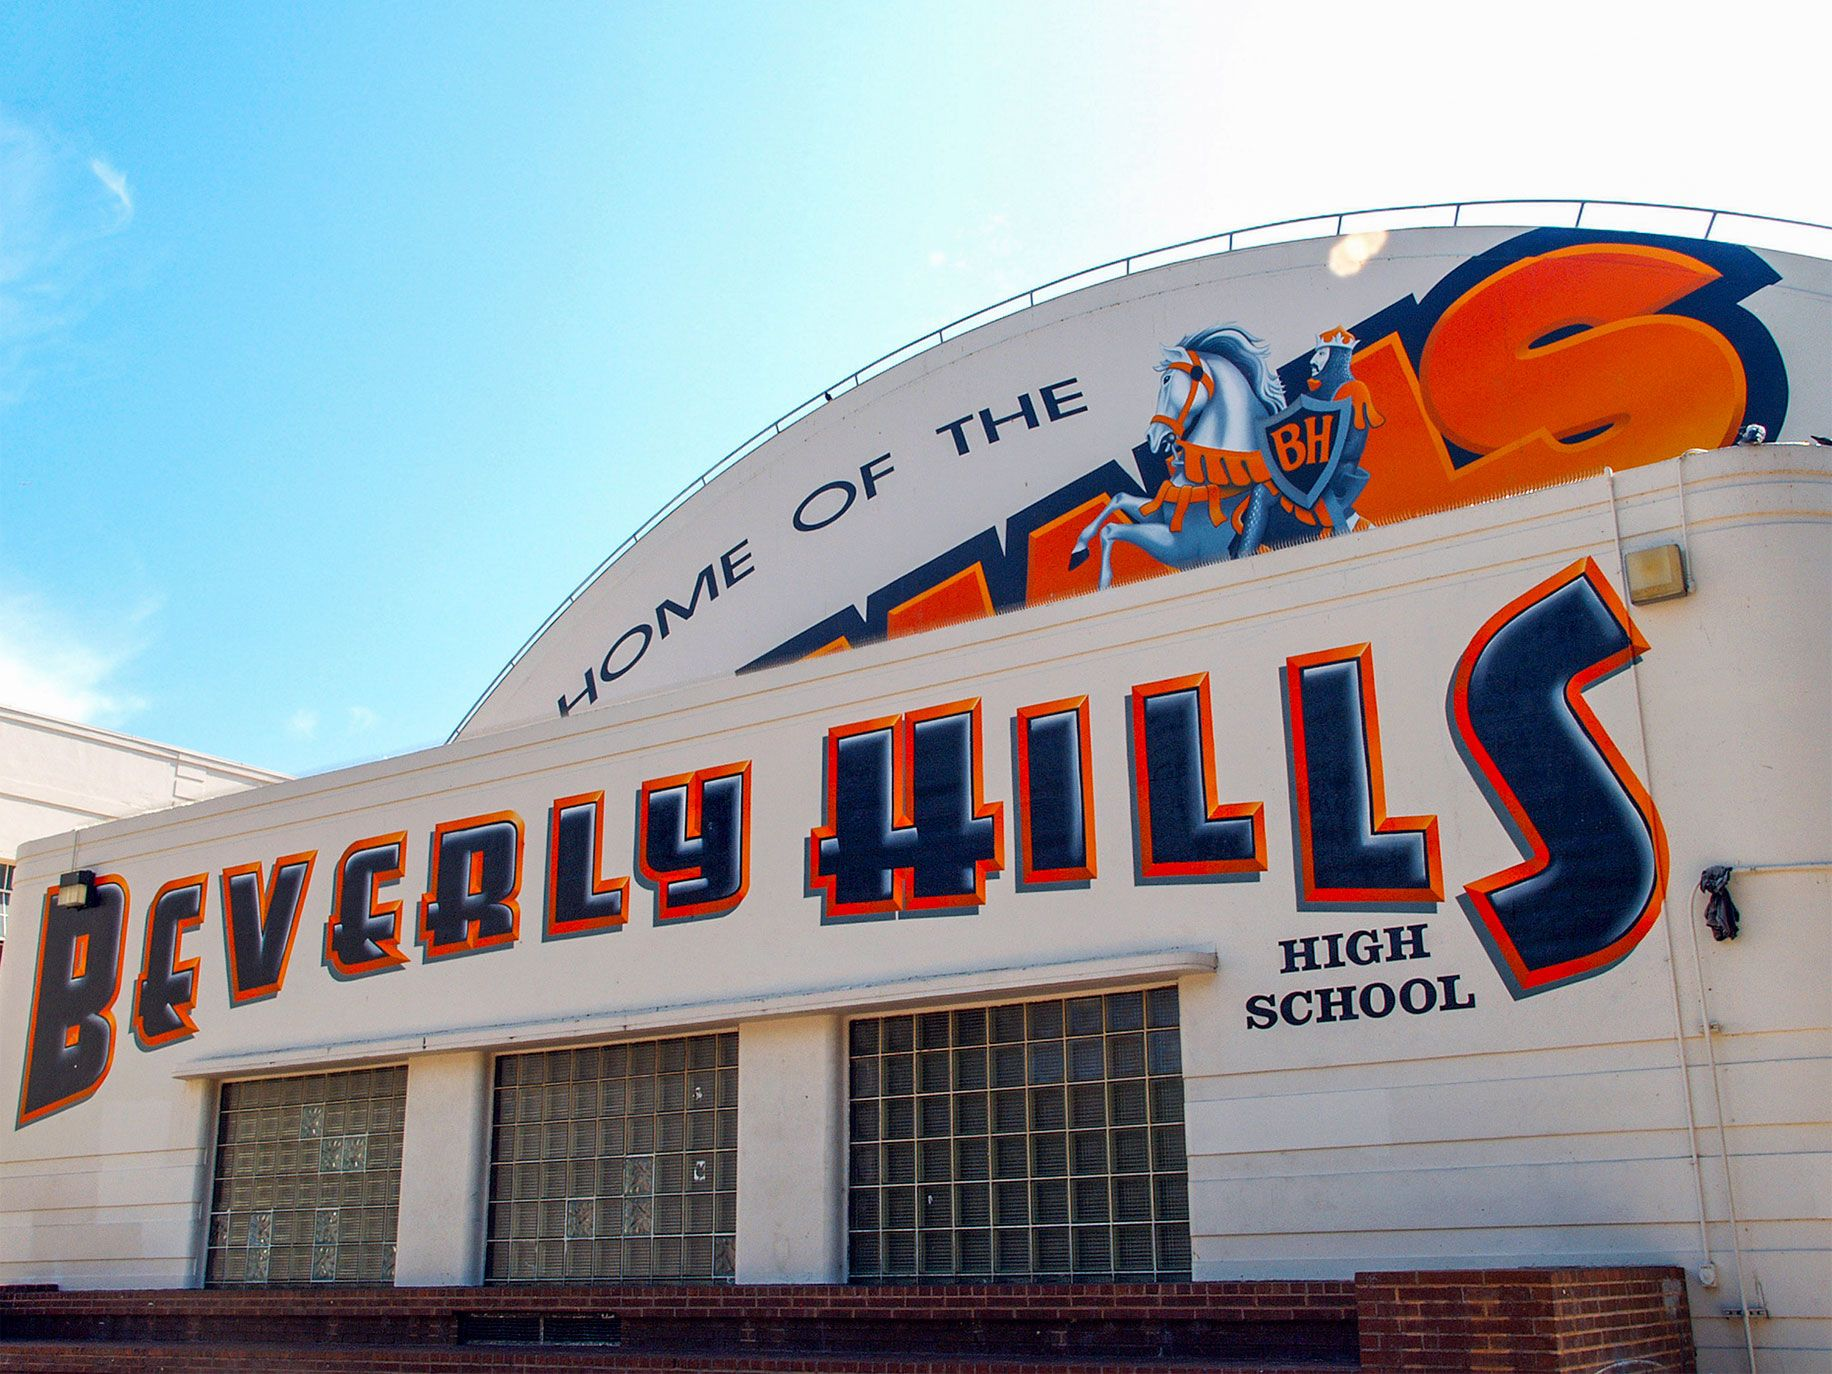 With a glittering list of alumni that includes Jamie Lee Curtis, Barry Diller, Angelina Jolie and Rob Reiner, as well as a basketball court that converts into a swimming pool, Beverly Hills High is one of the nation's most famous high schools.